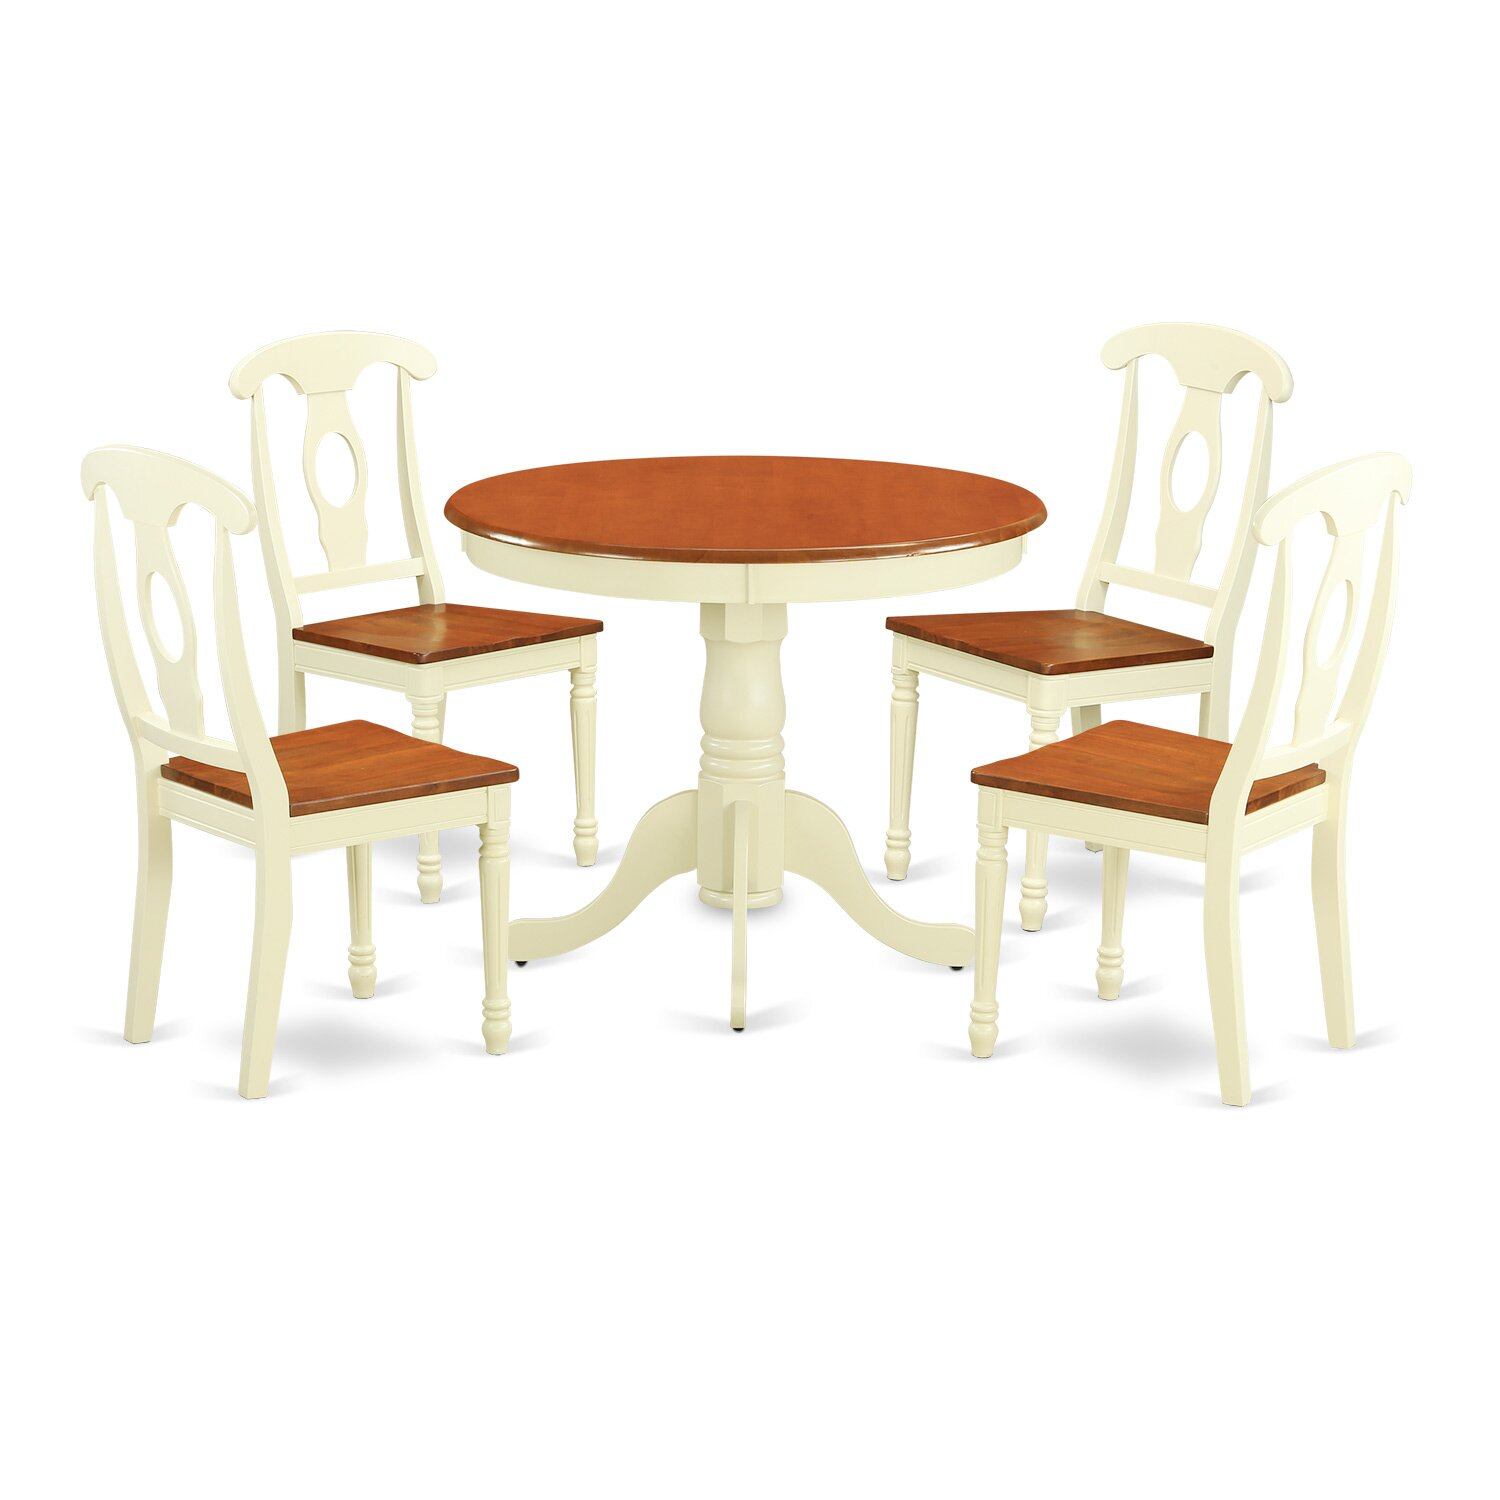 East west 5 piece dining set wayfair for 4 piece dining table set